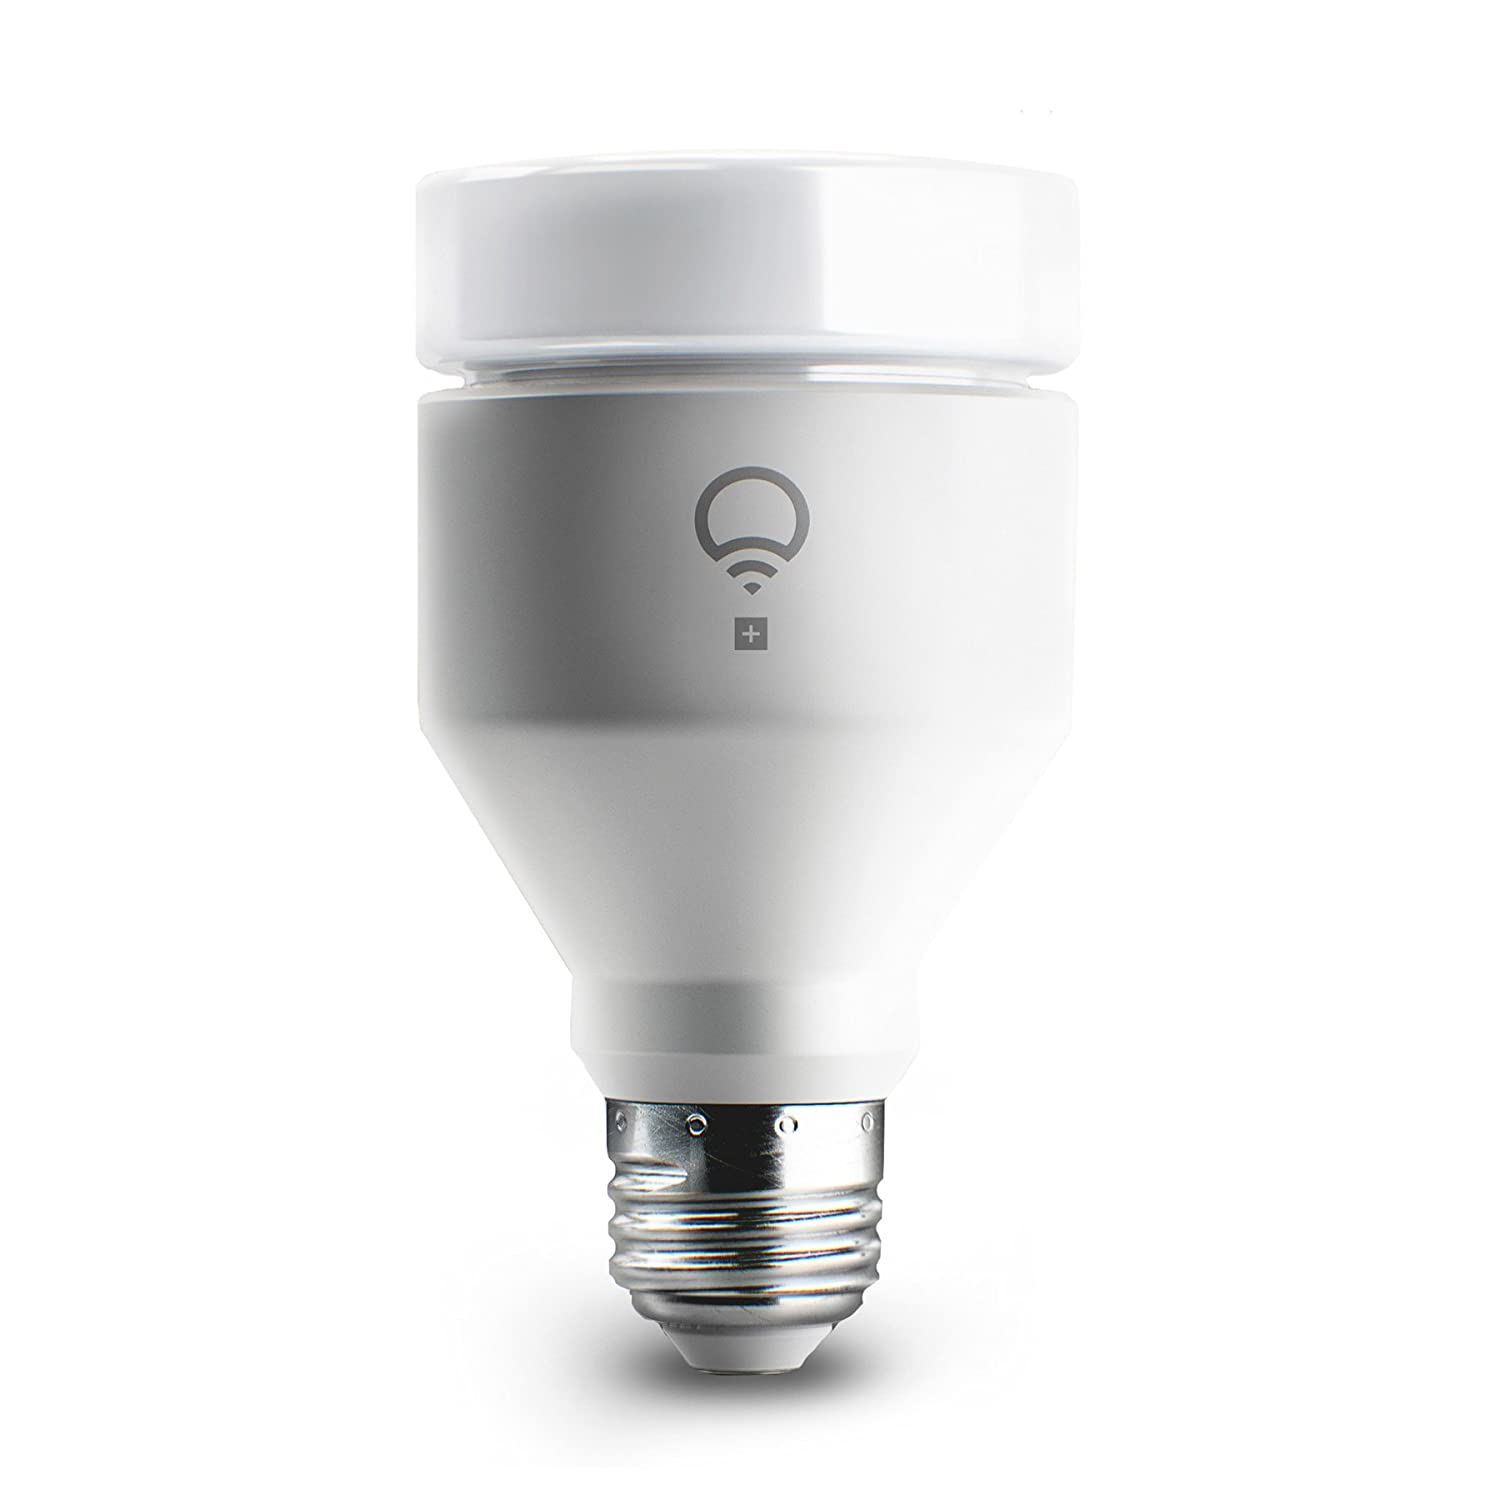 LIFX + (A19) Wi-Fi Smart LED Light Bulb with Infrared for Night ...